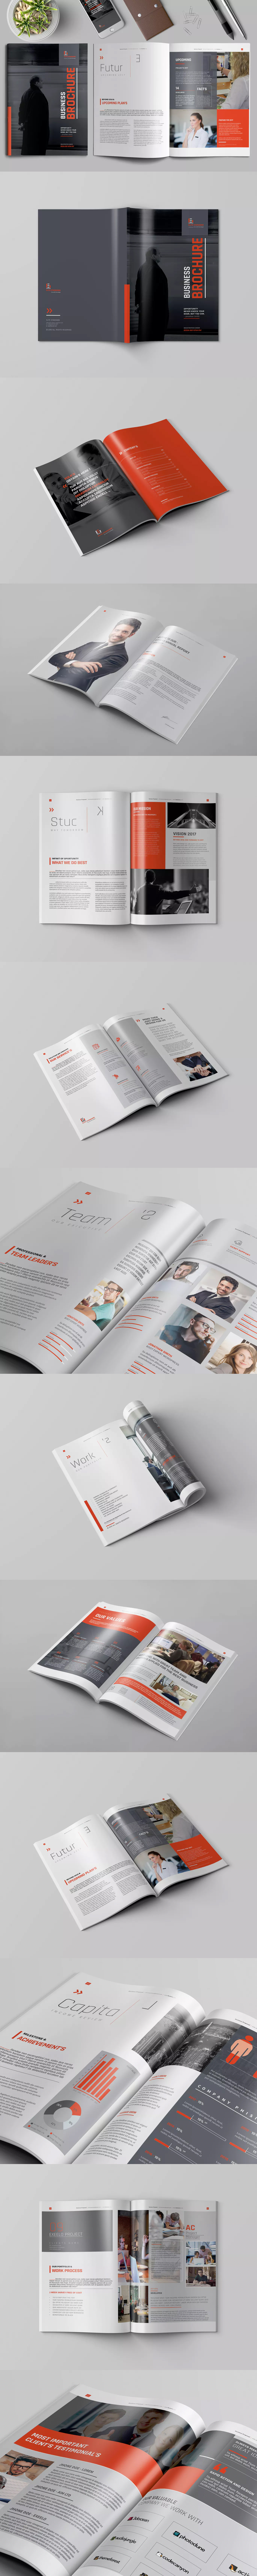 Brochure Template InDesign INDD A4 and US Letter Size | DESAIN ...